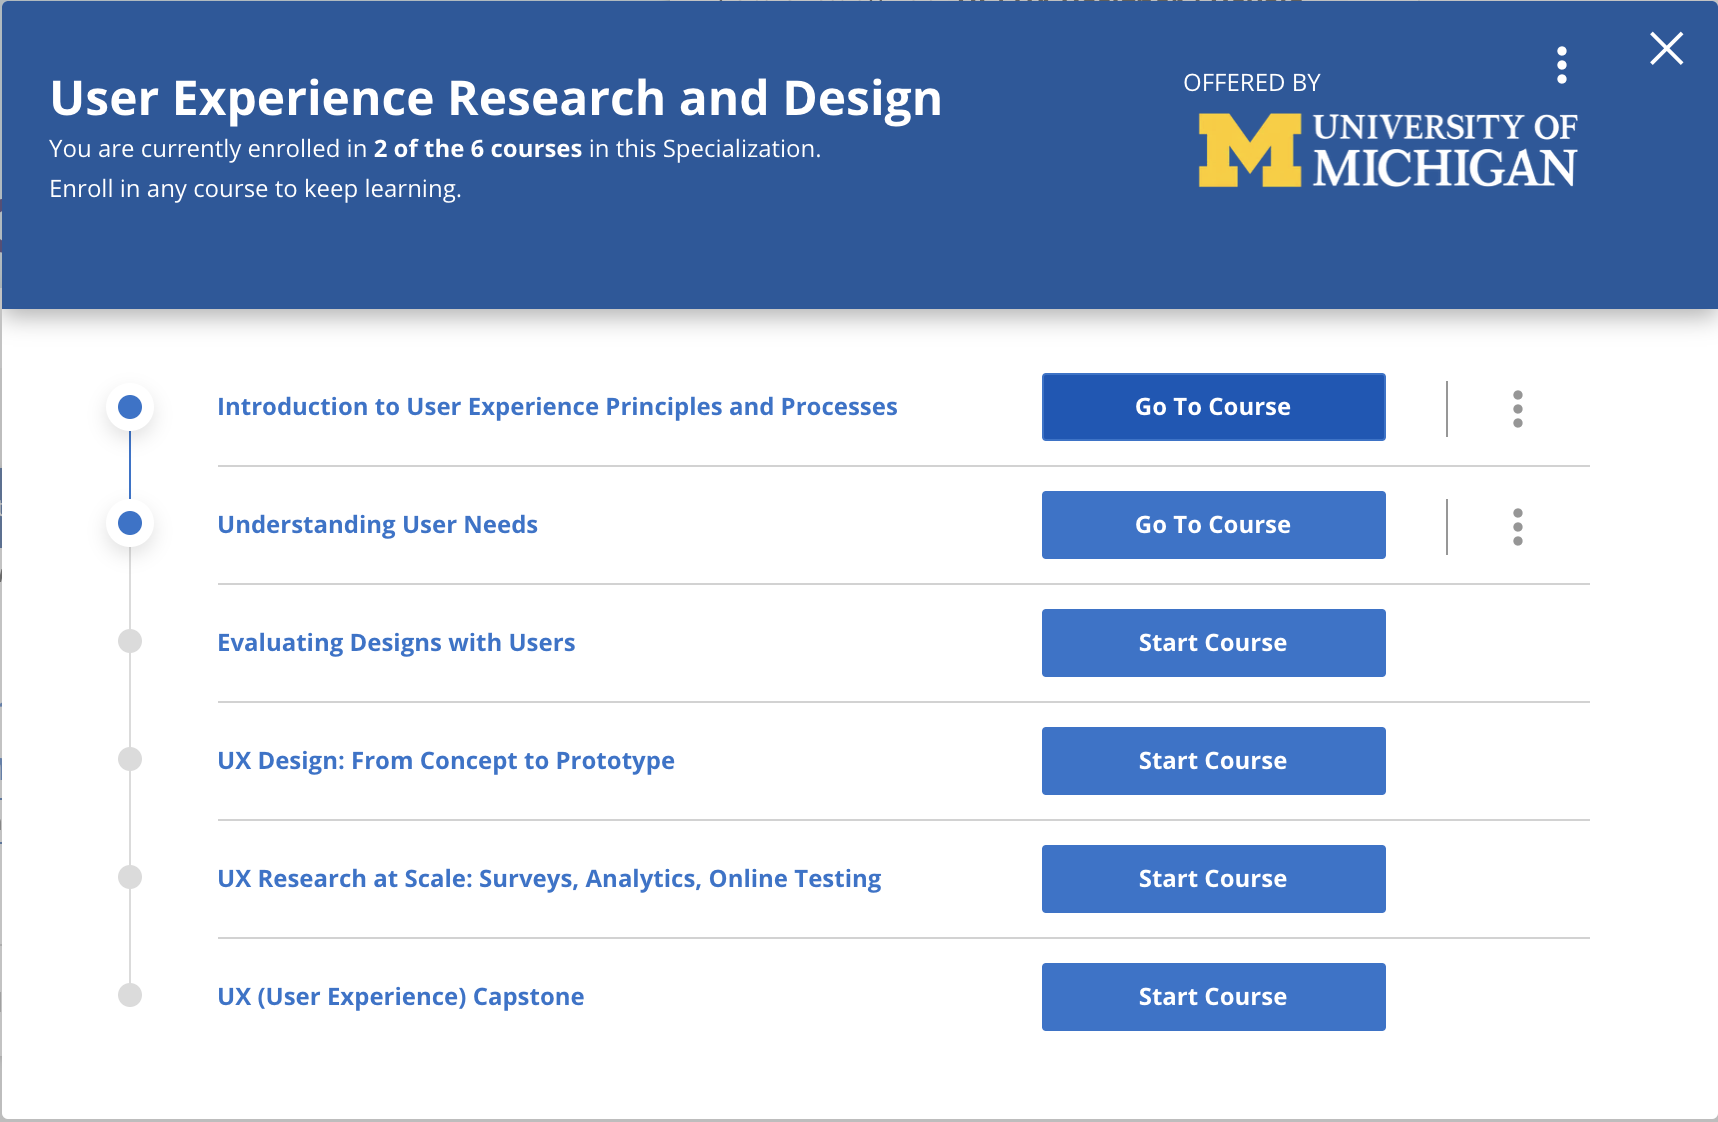 Coursera - User Experience Research and Design Course